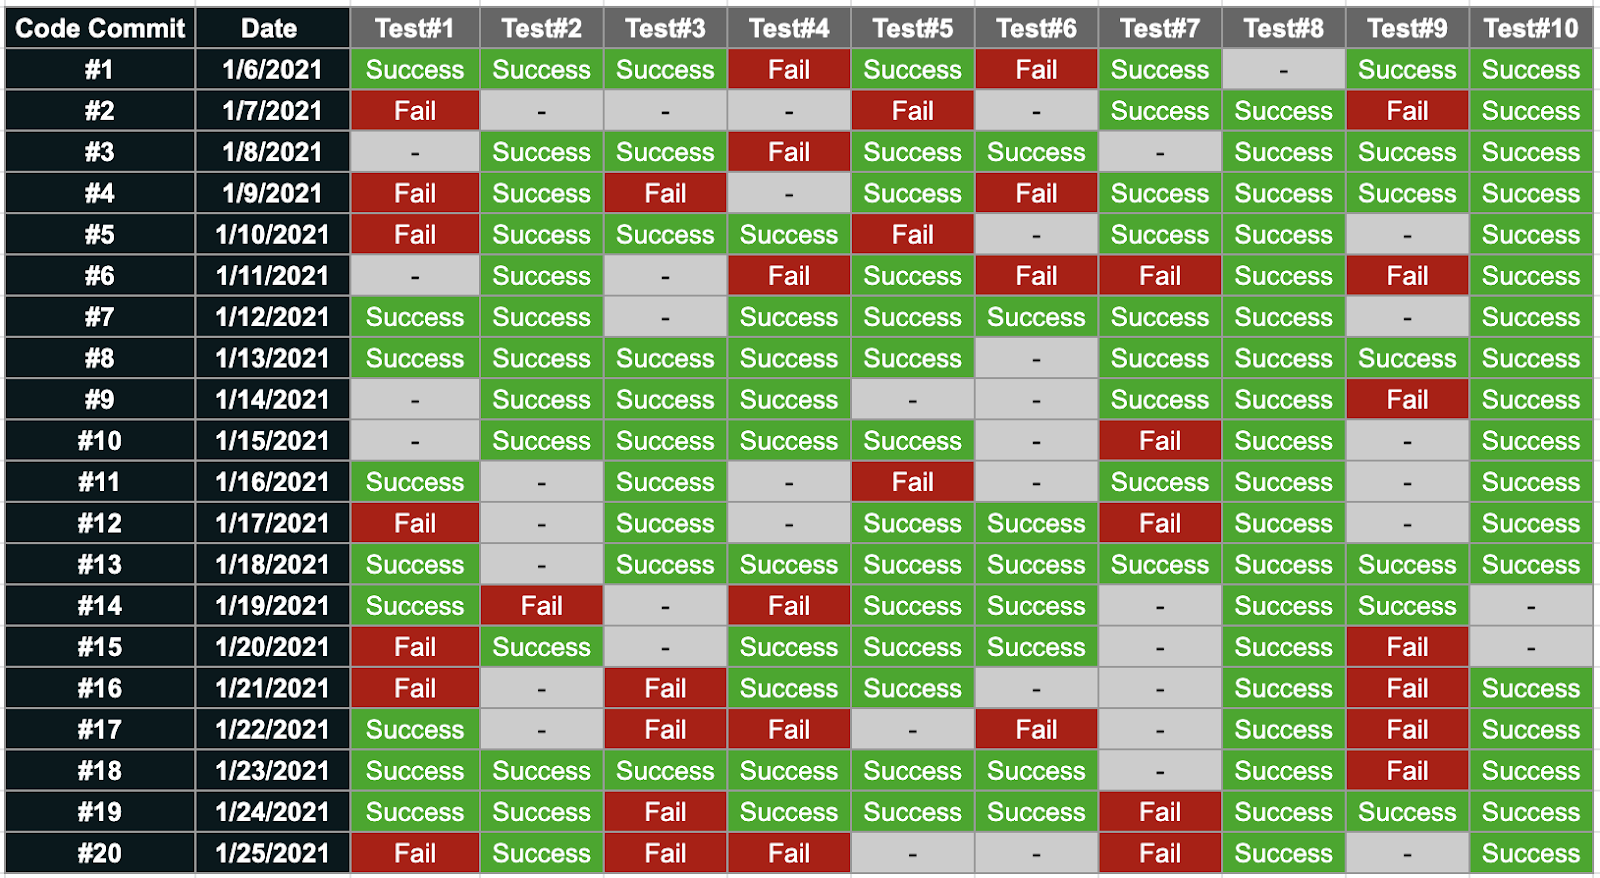 Tests which failed and succeeded